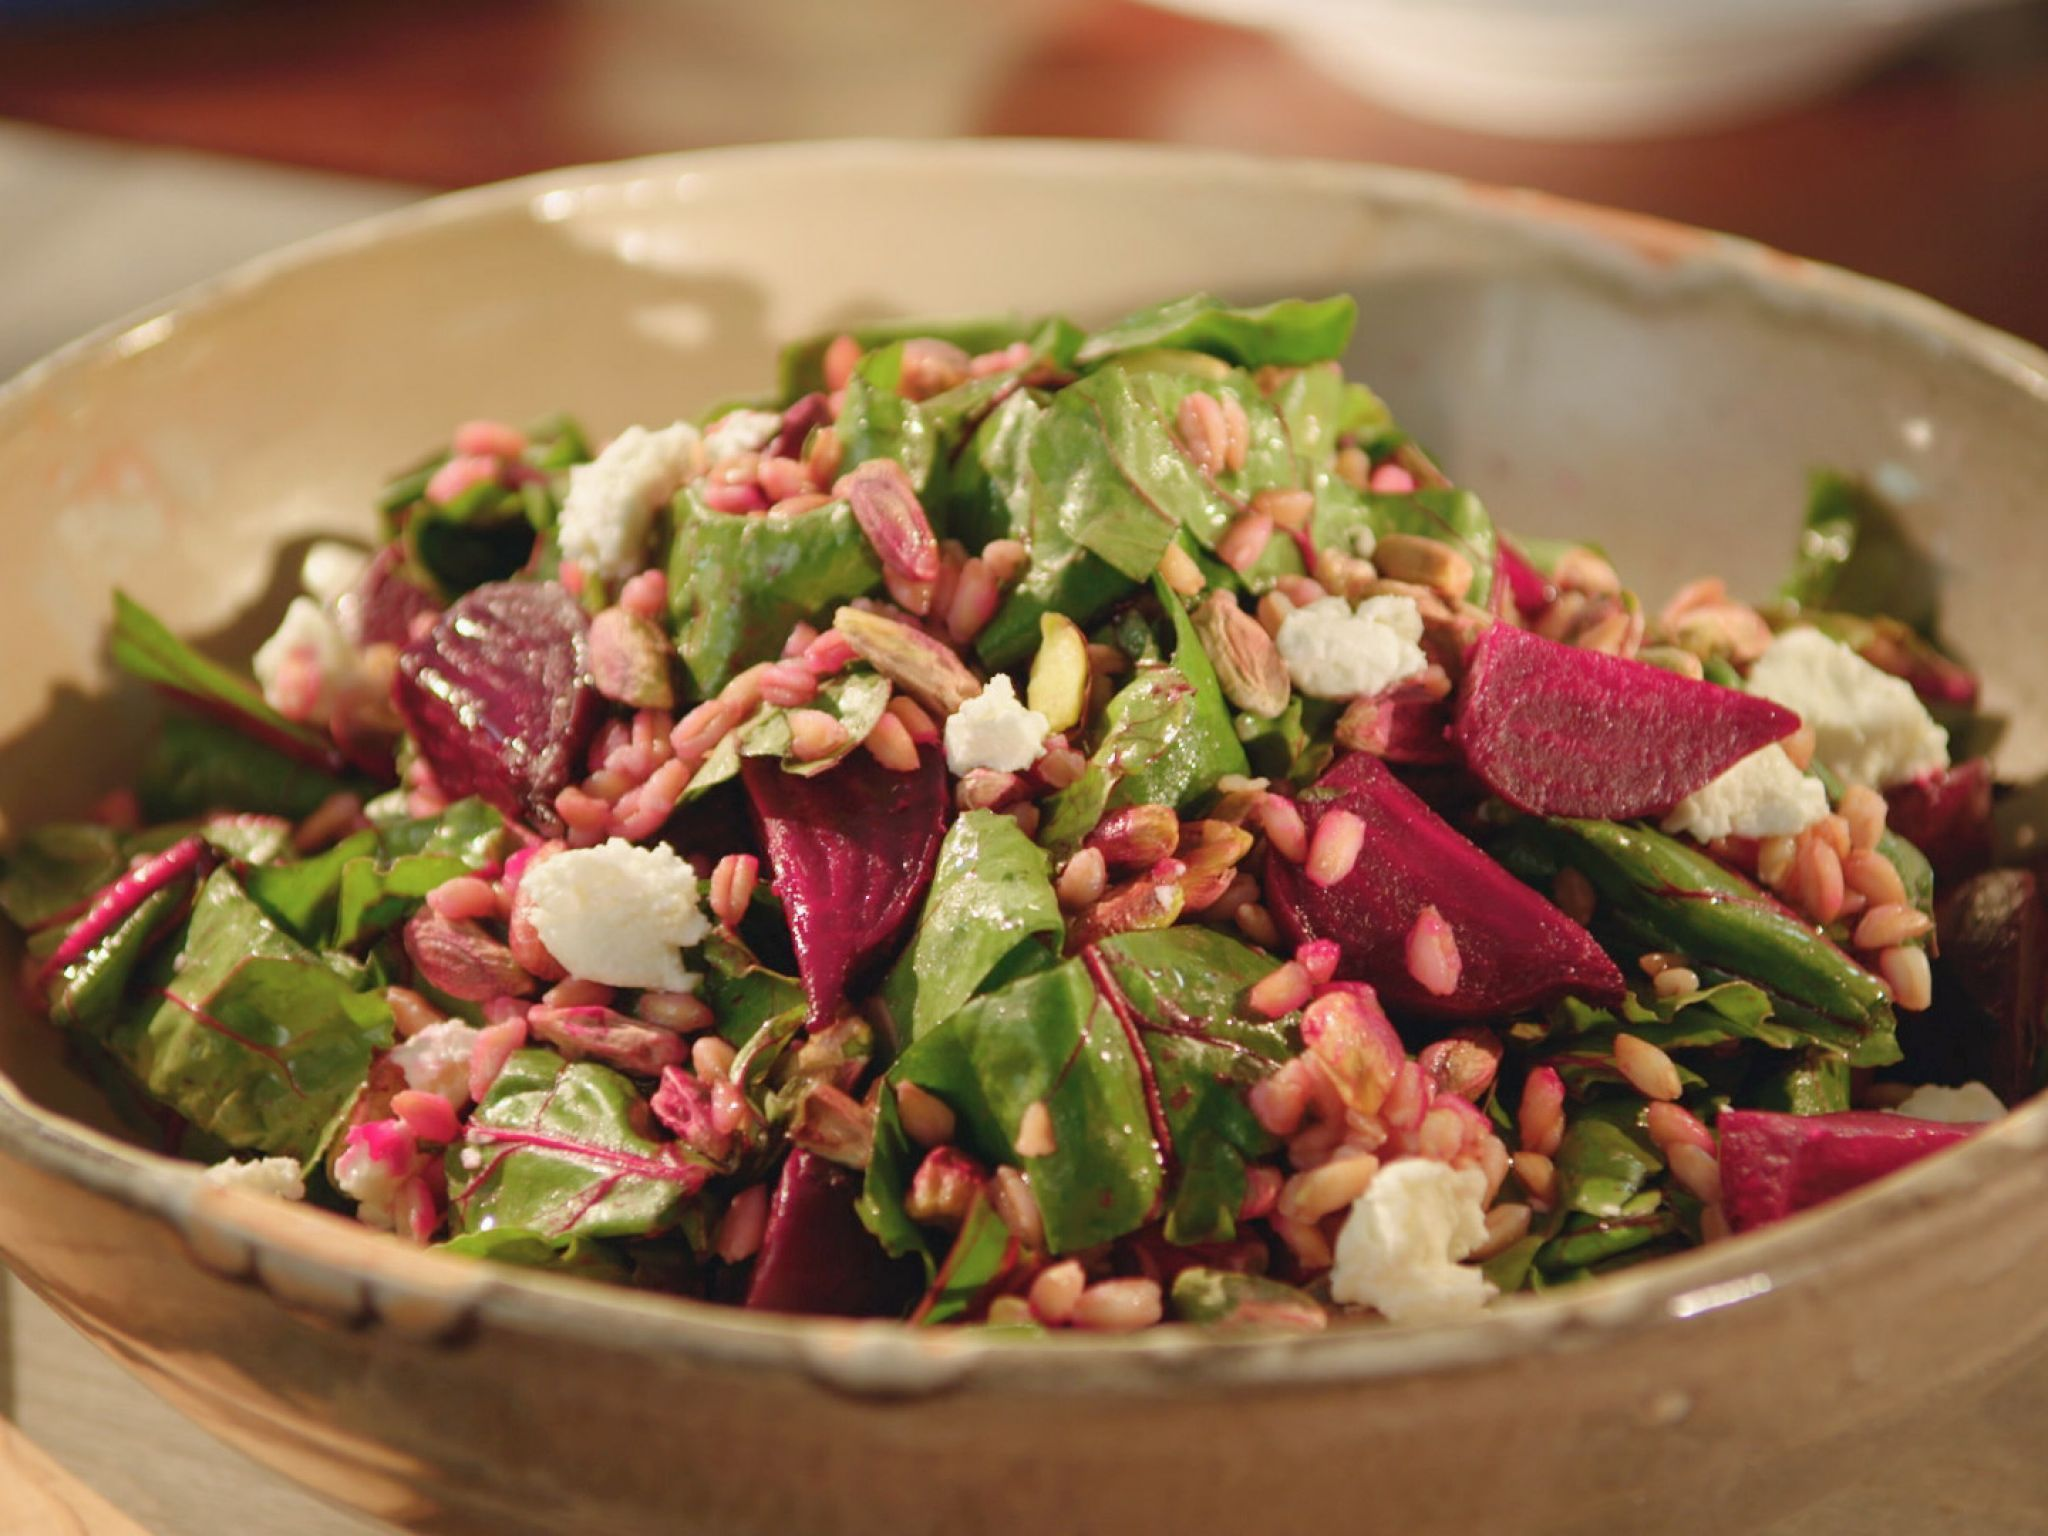 Farro Roasted Beet And Goat Cheese Salad Valeriebertinellirecipes Farro Roasted Beet And Goat Ch Beet And Goat Cheese Goat Cheese Salad Recipe Roasted Beets